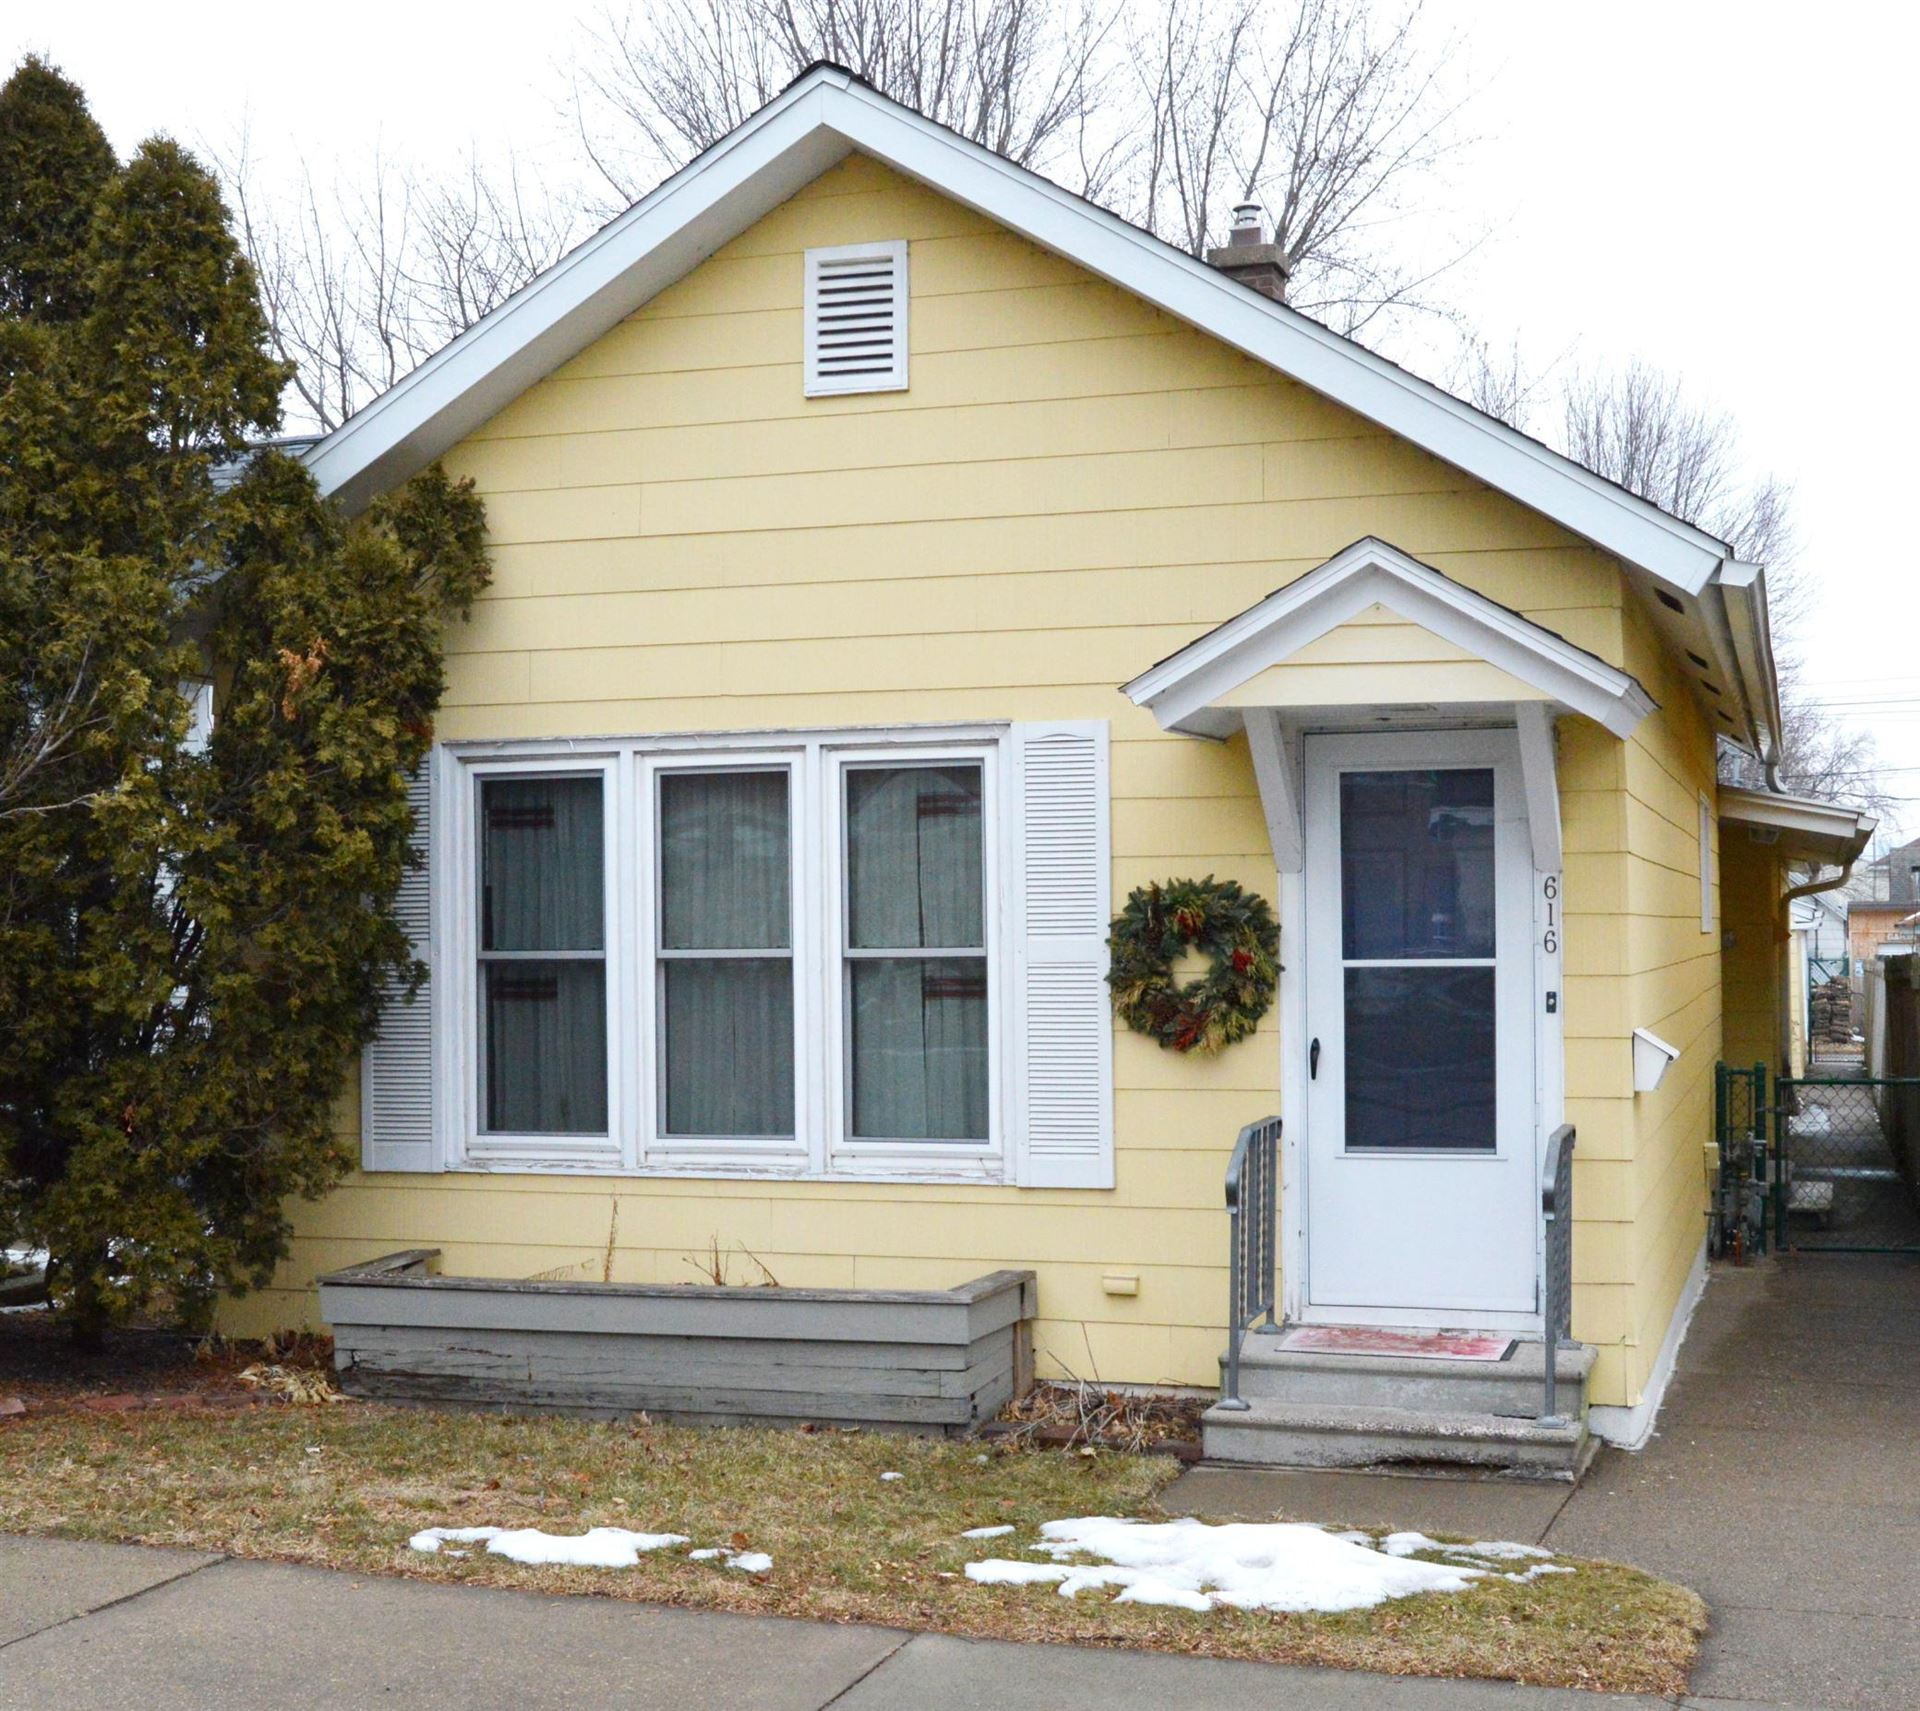 616 E 4th Street, Winona, MN 55987 - MLS#: 5701912